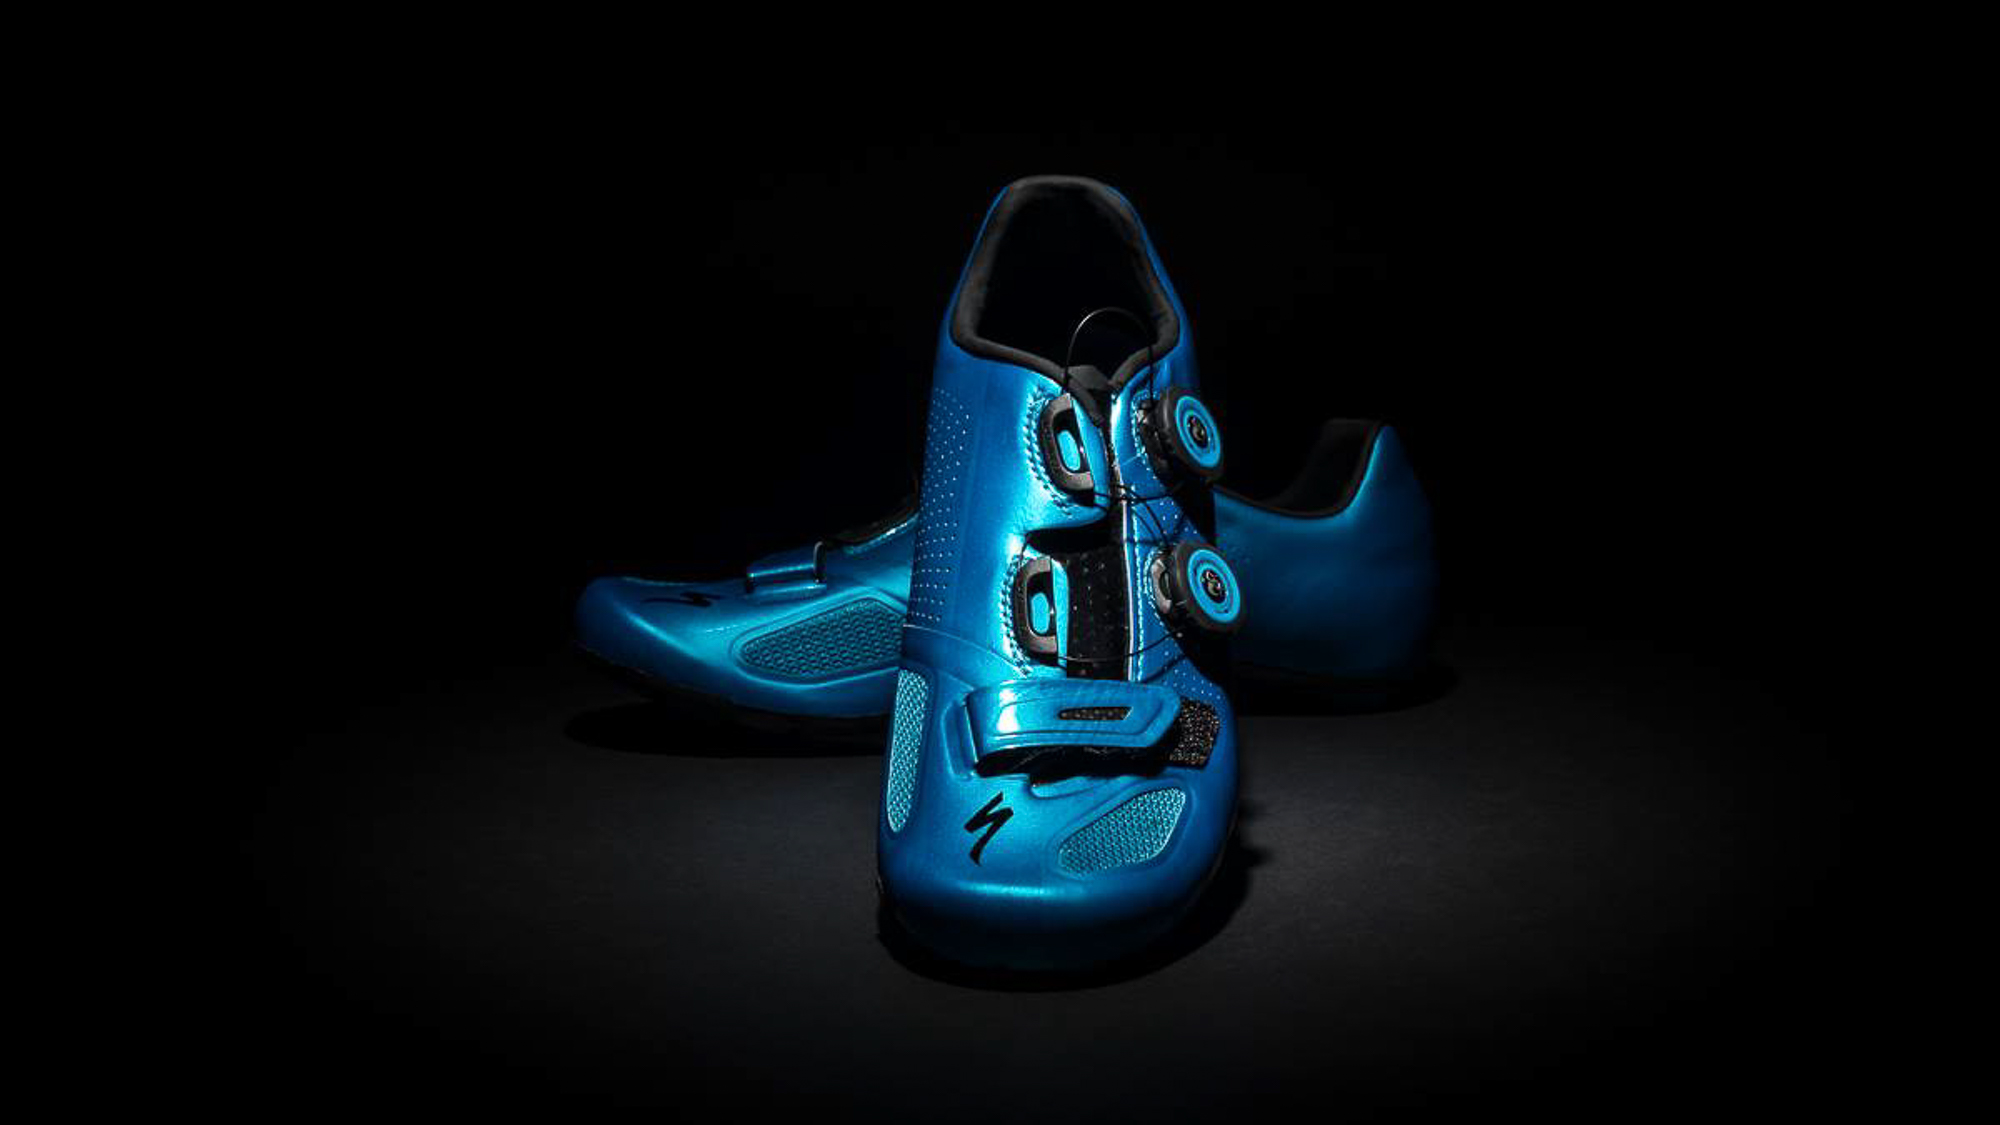 Product photography services studio photographer Singapore e-commerce shoot cycling shoes bike specialised sworks